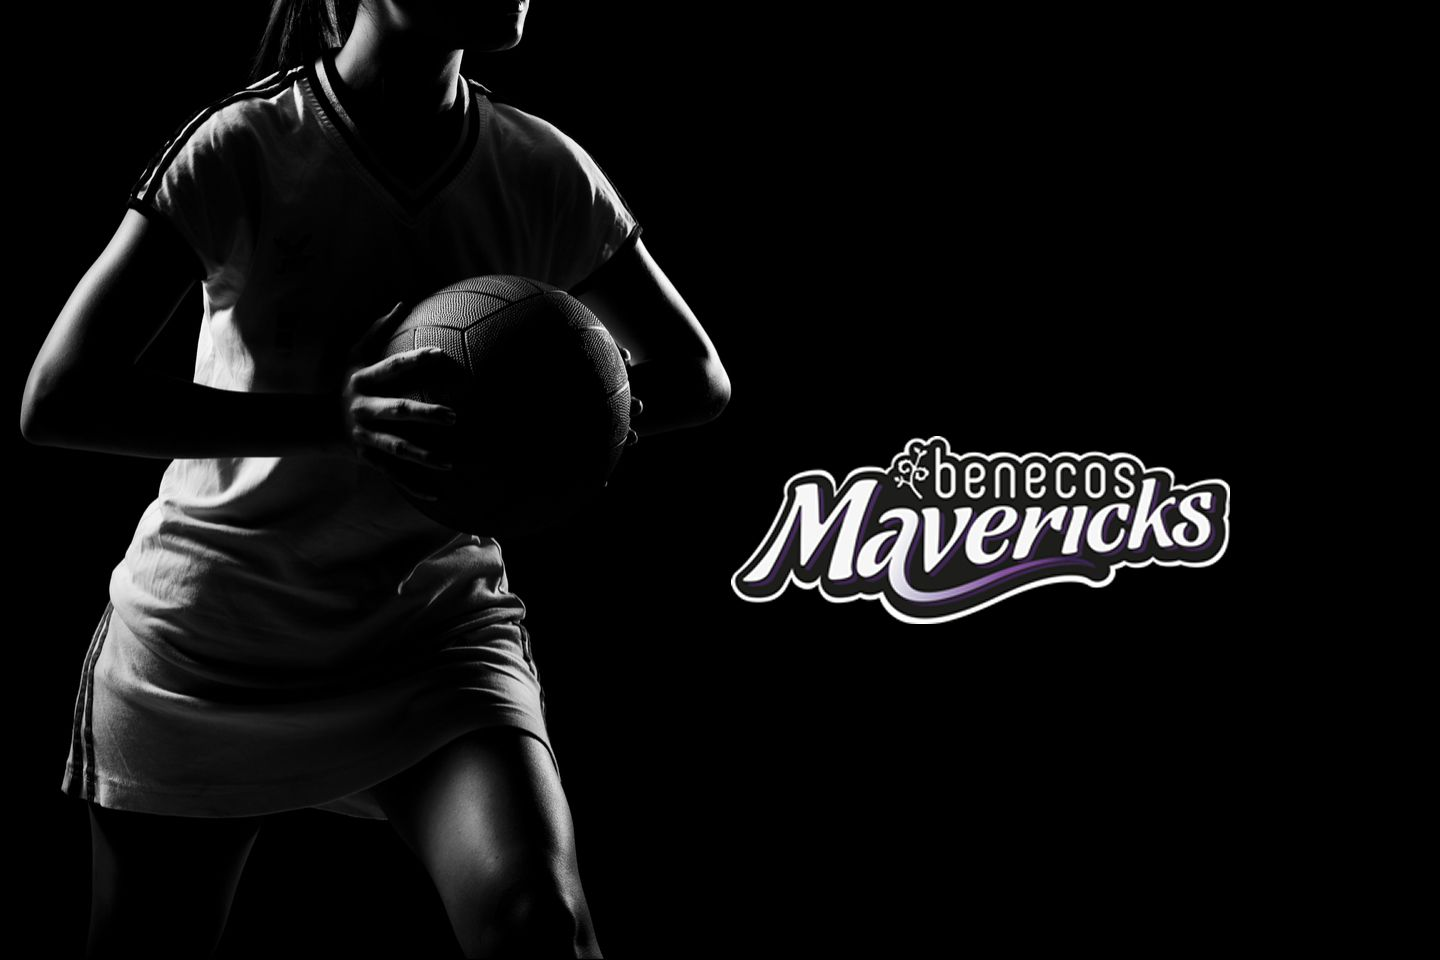 Benecos Mavericks